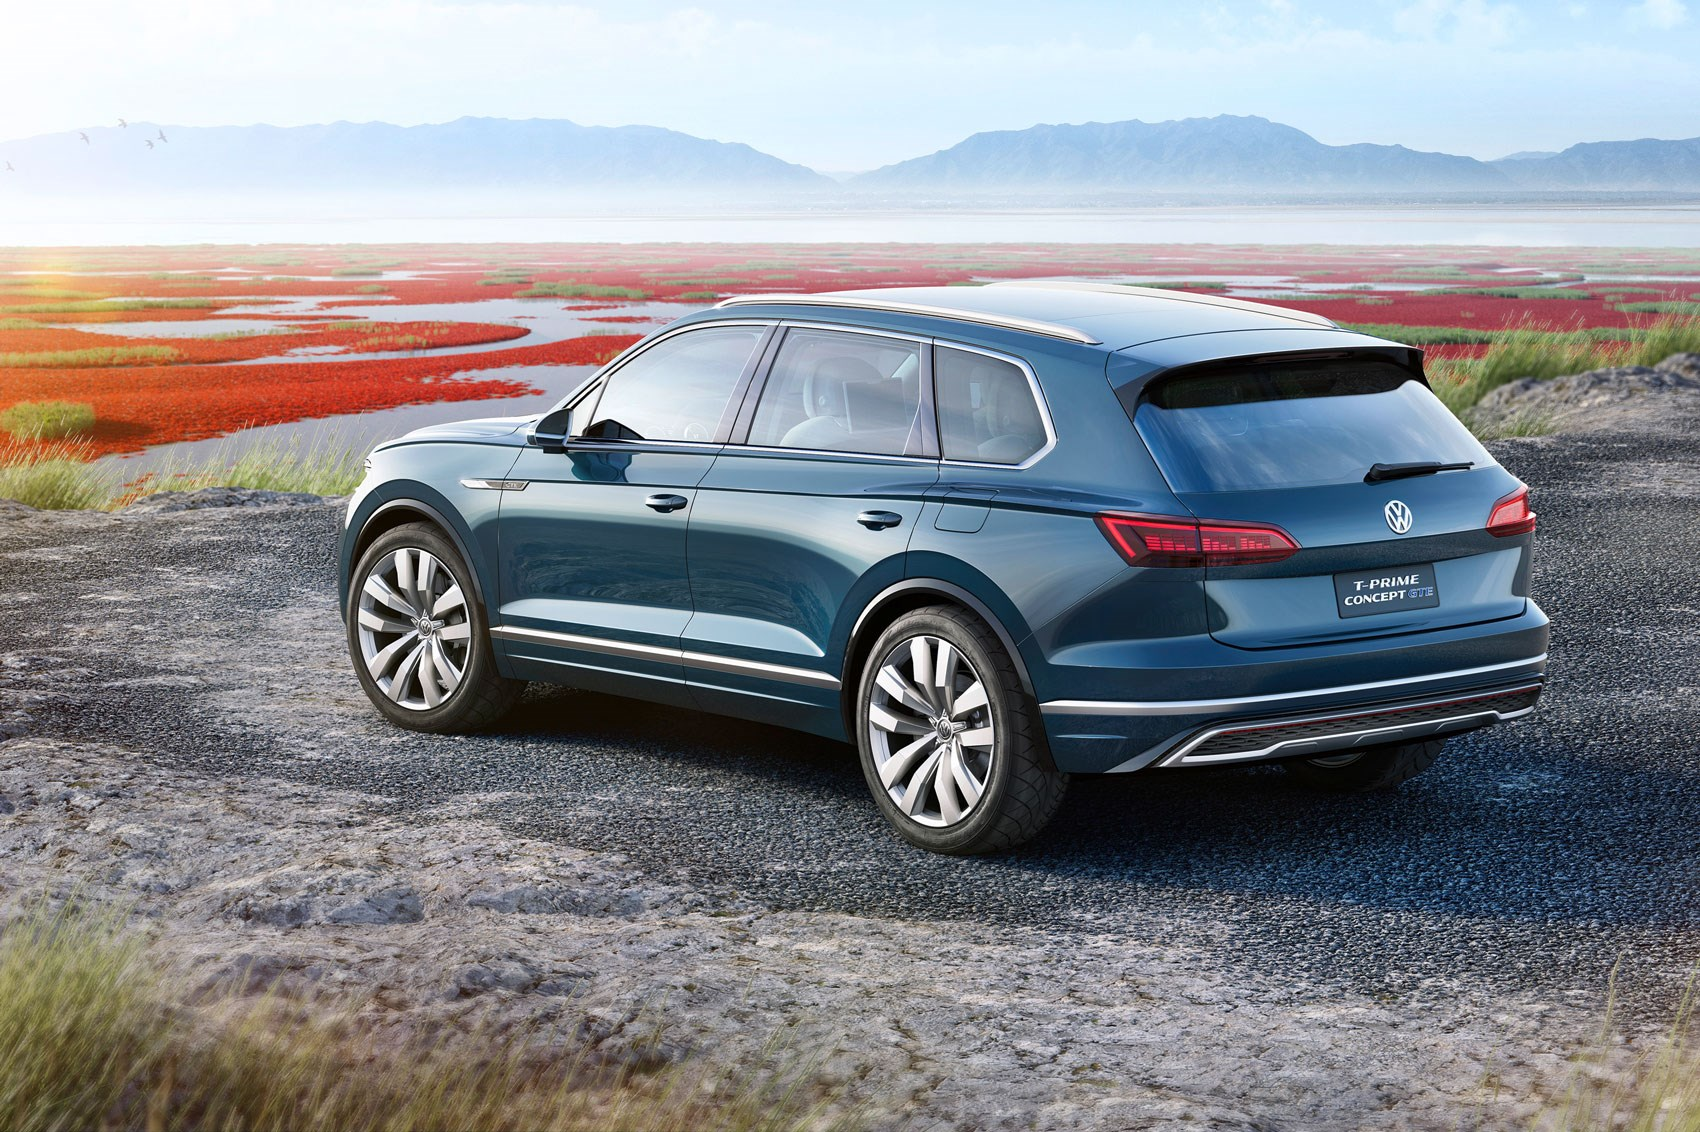 new vw touareg techy flagship suv revealed in beijing by. Black Bedroom Furniture Sets. Home Design Ideas